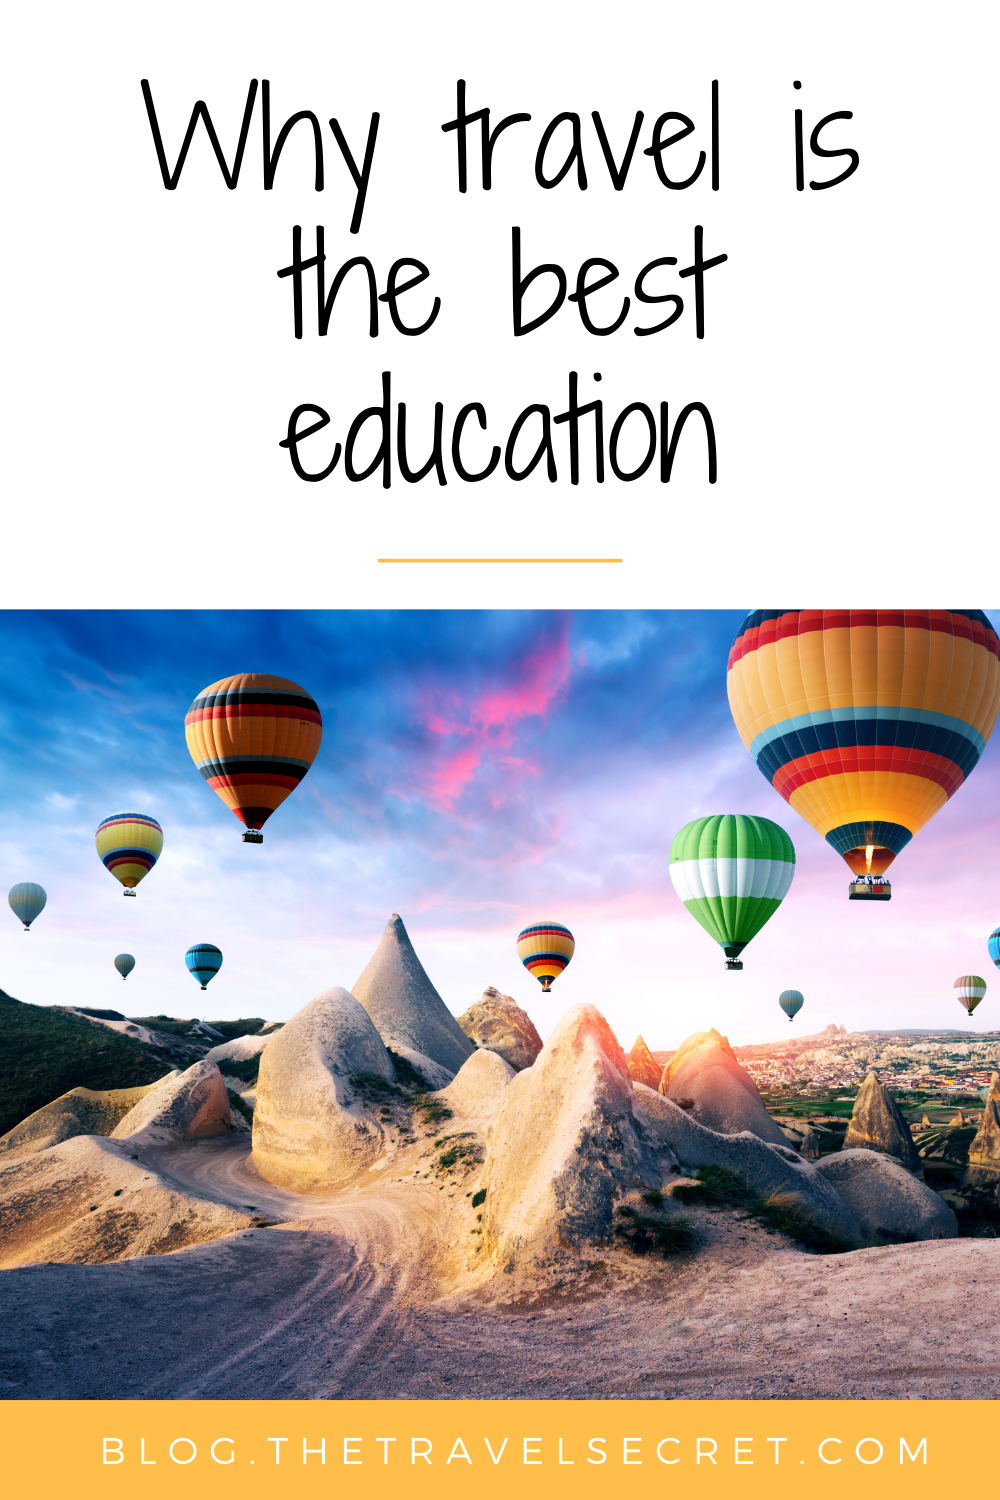 Why travel is the best education